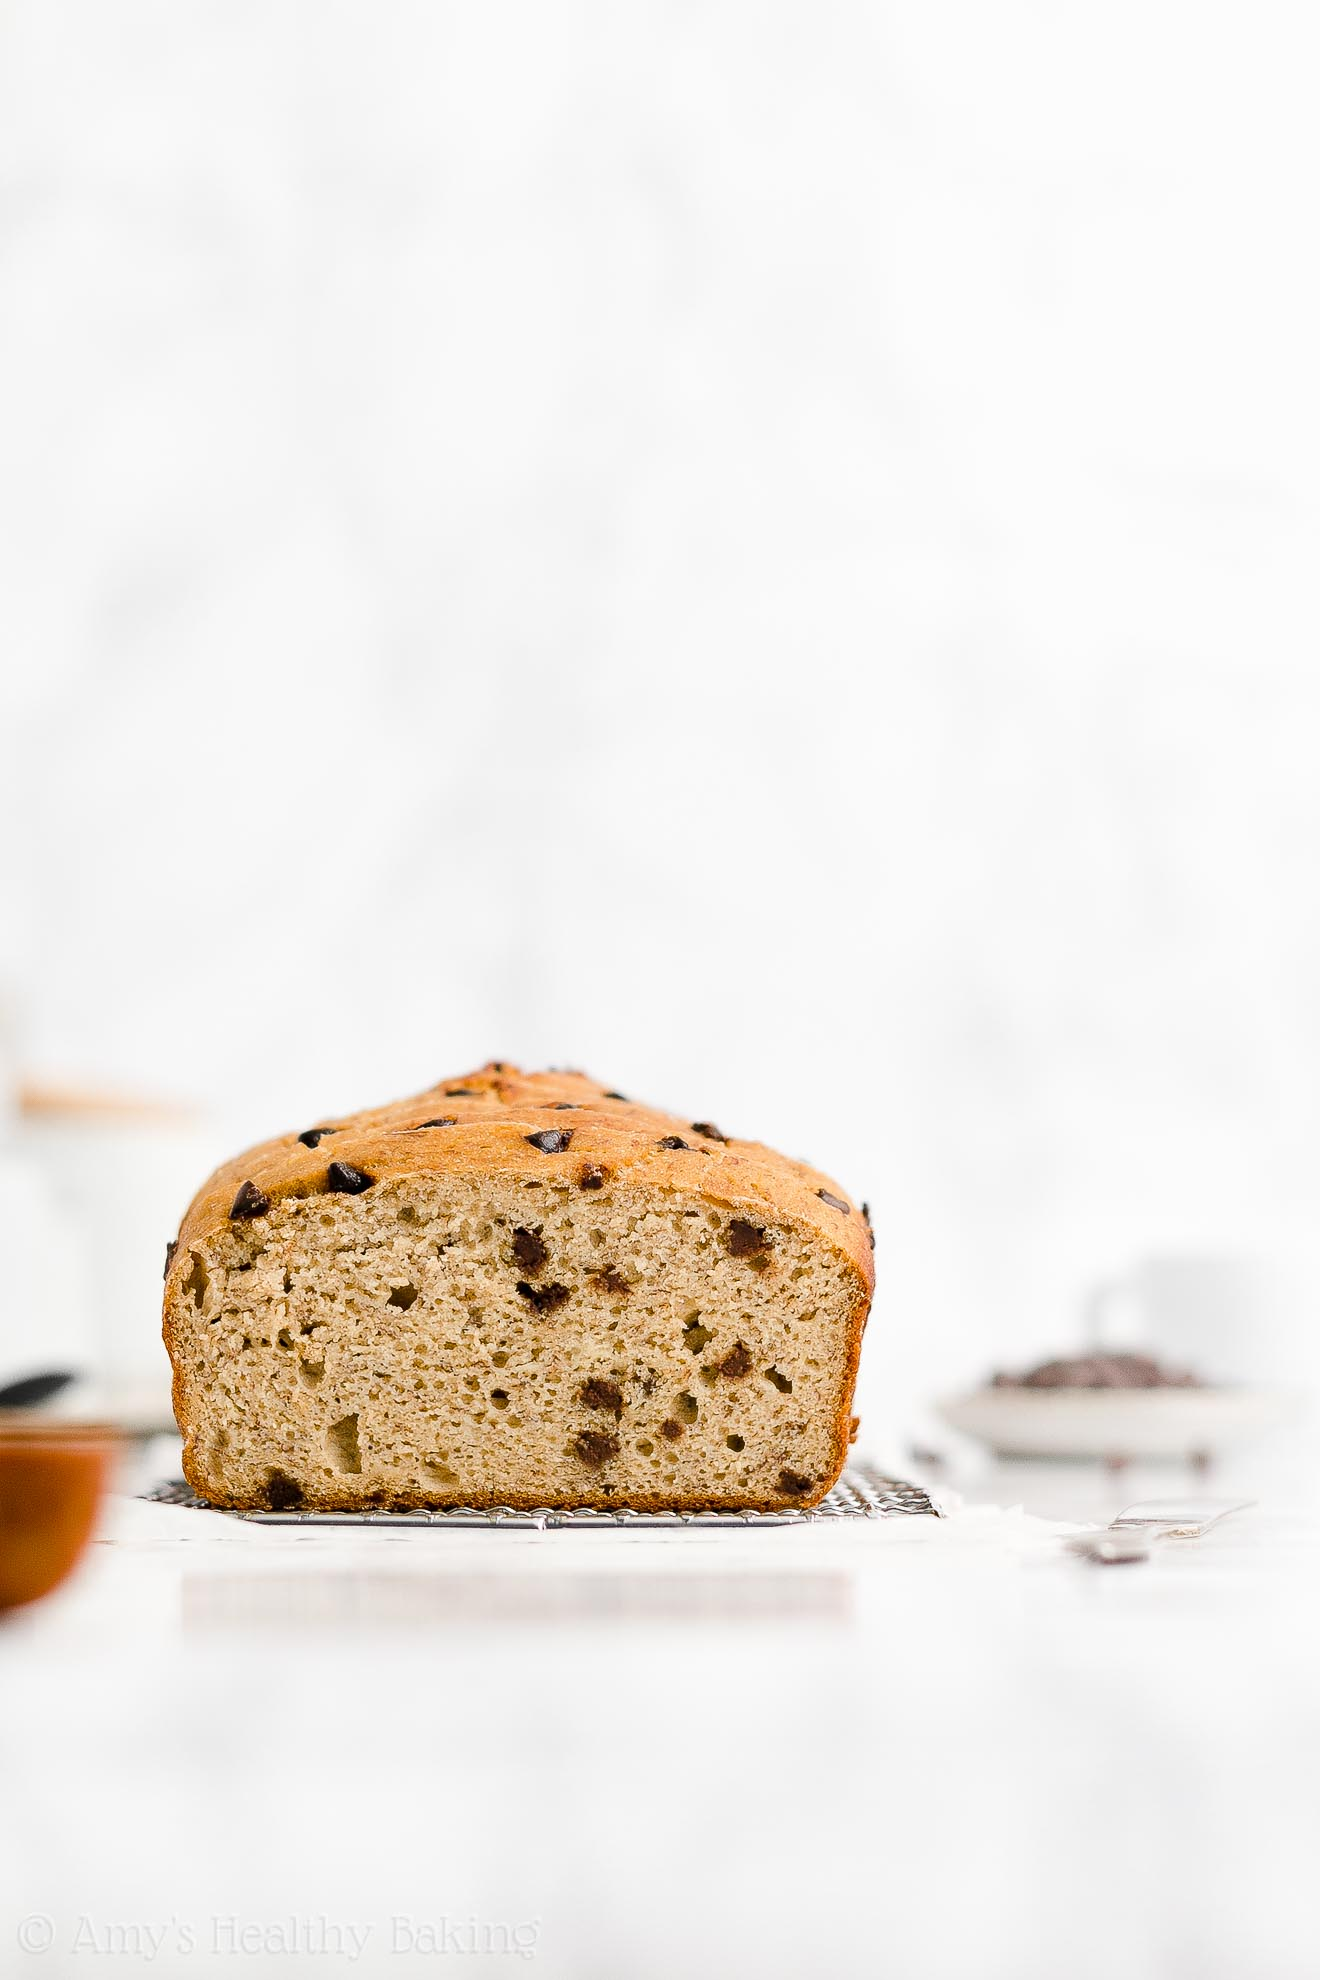 Best Easy Healthy Clean Eating Low Fat One-Bowl Chocolate Chip Banana Bread